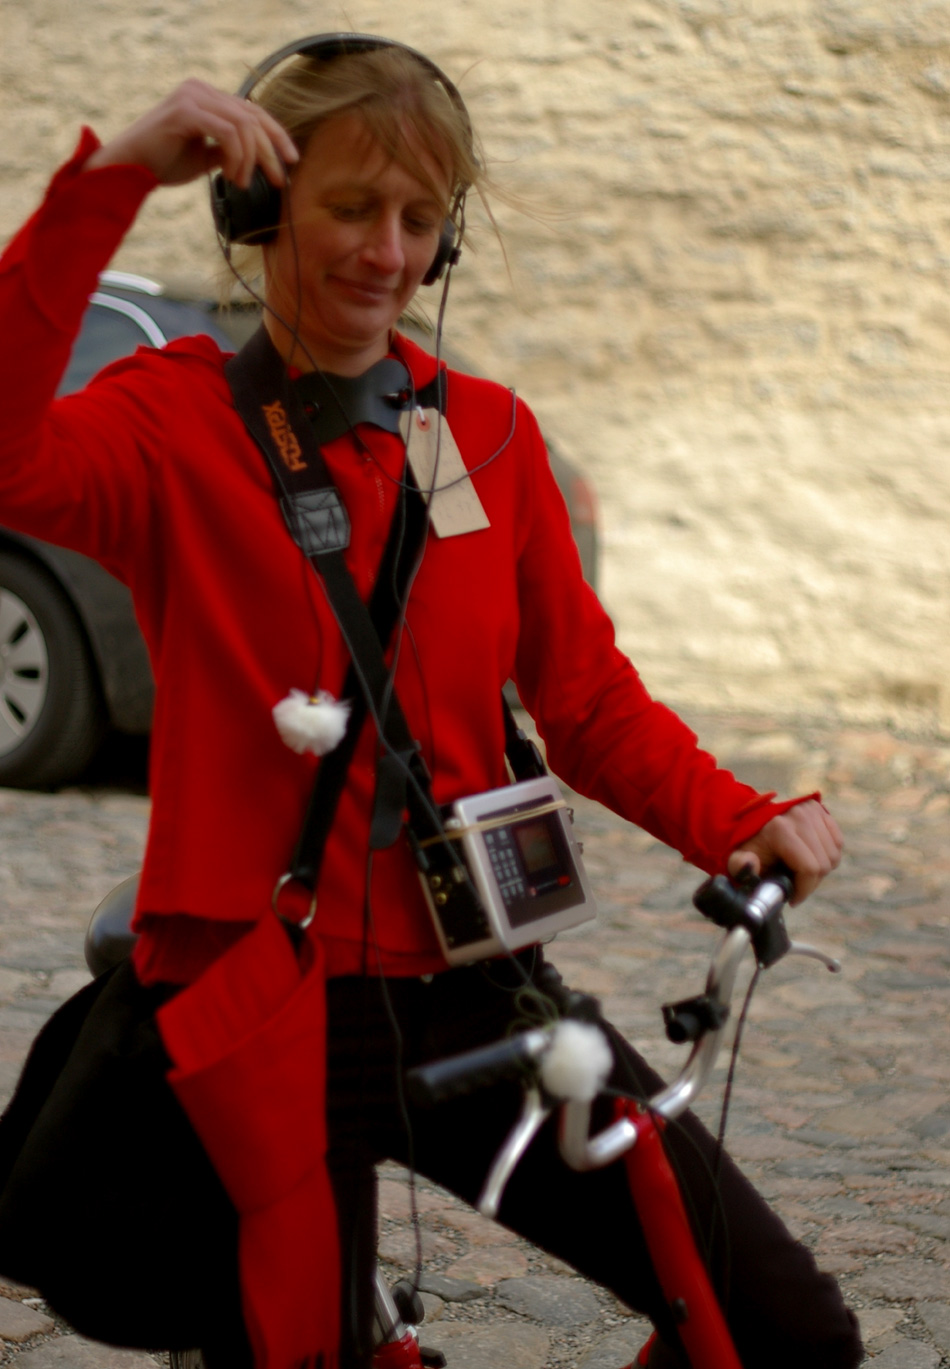 Kadrianna in her little red jacket on her little red bicycle, attempting to capture or record the sounds of cycling through Tallinn on the cobblestones with which she associates this favourite garment